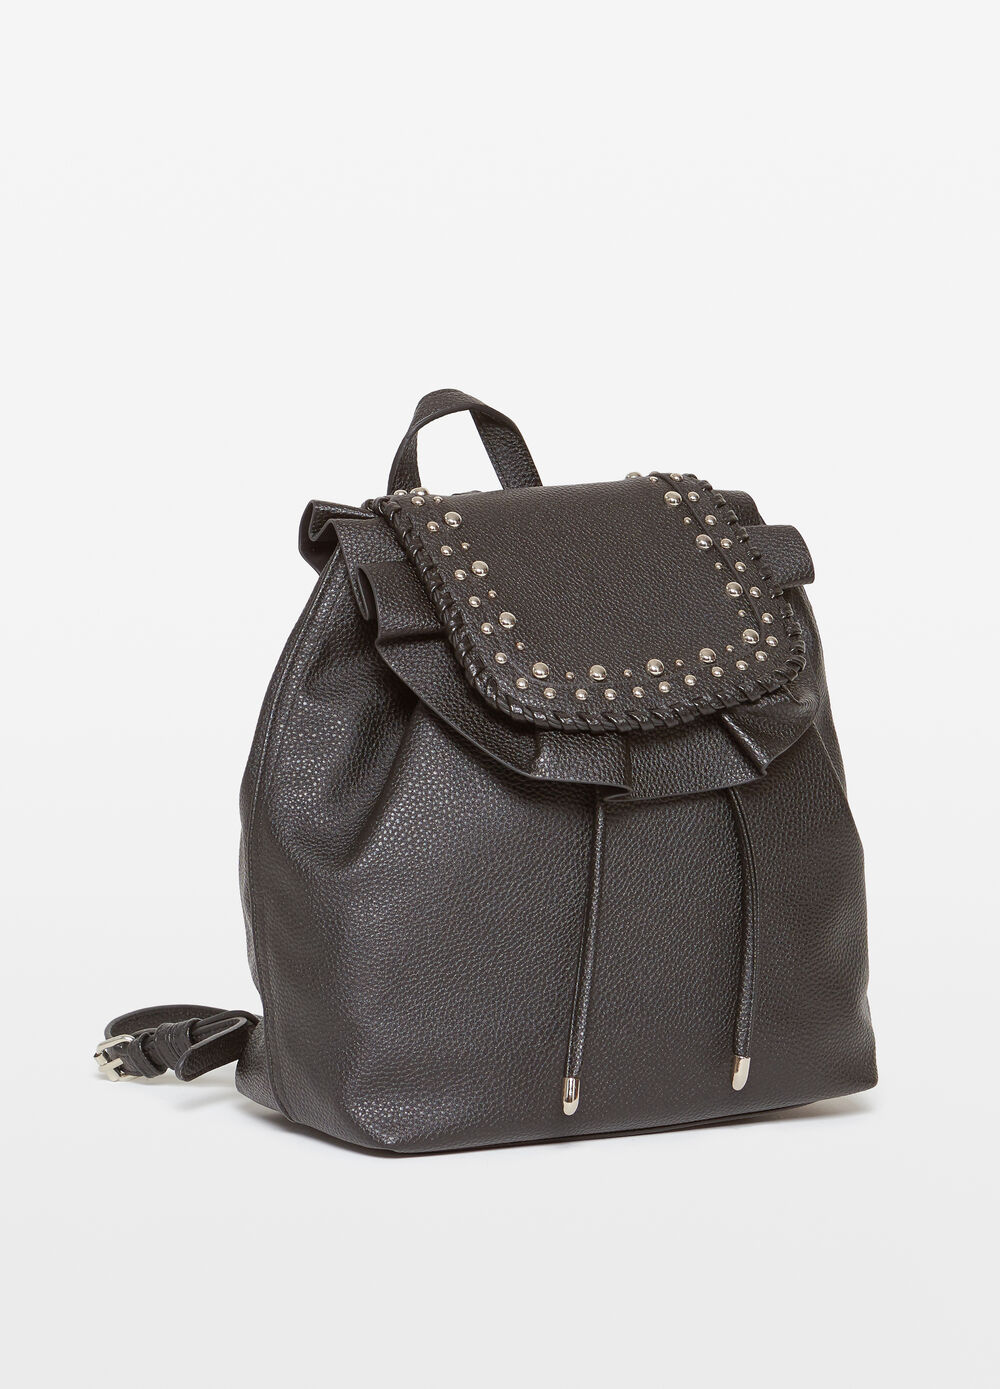 Backpack with ruches studs